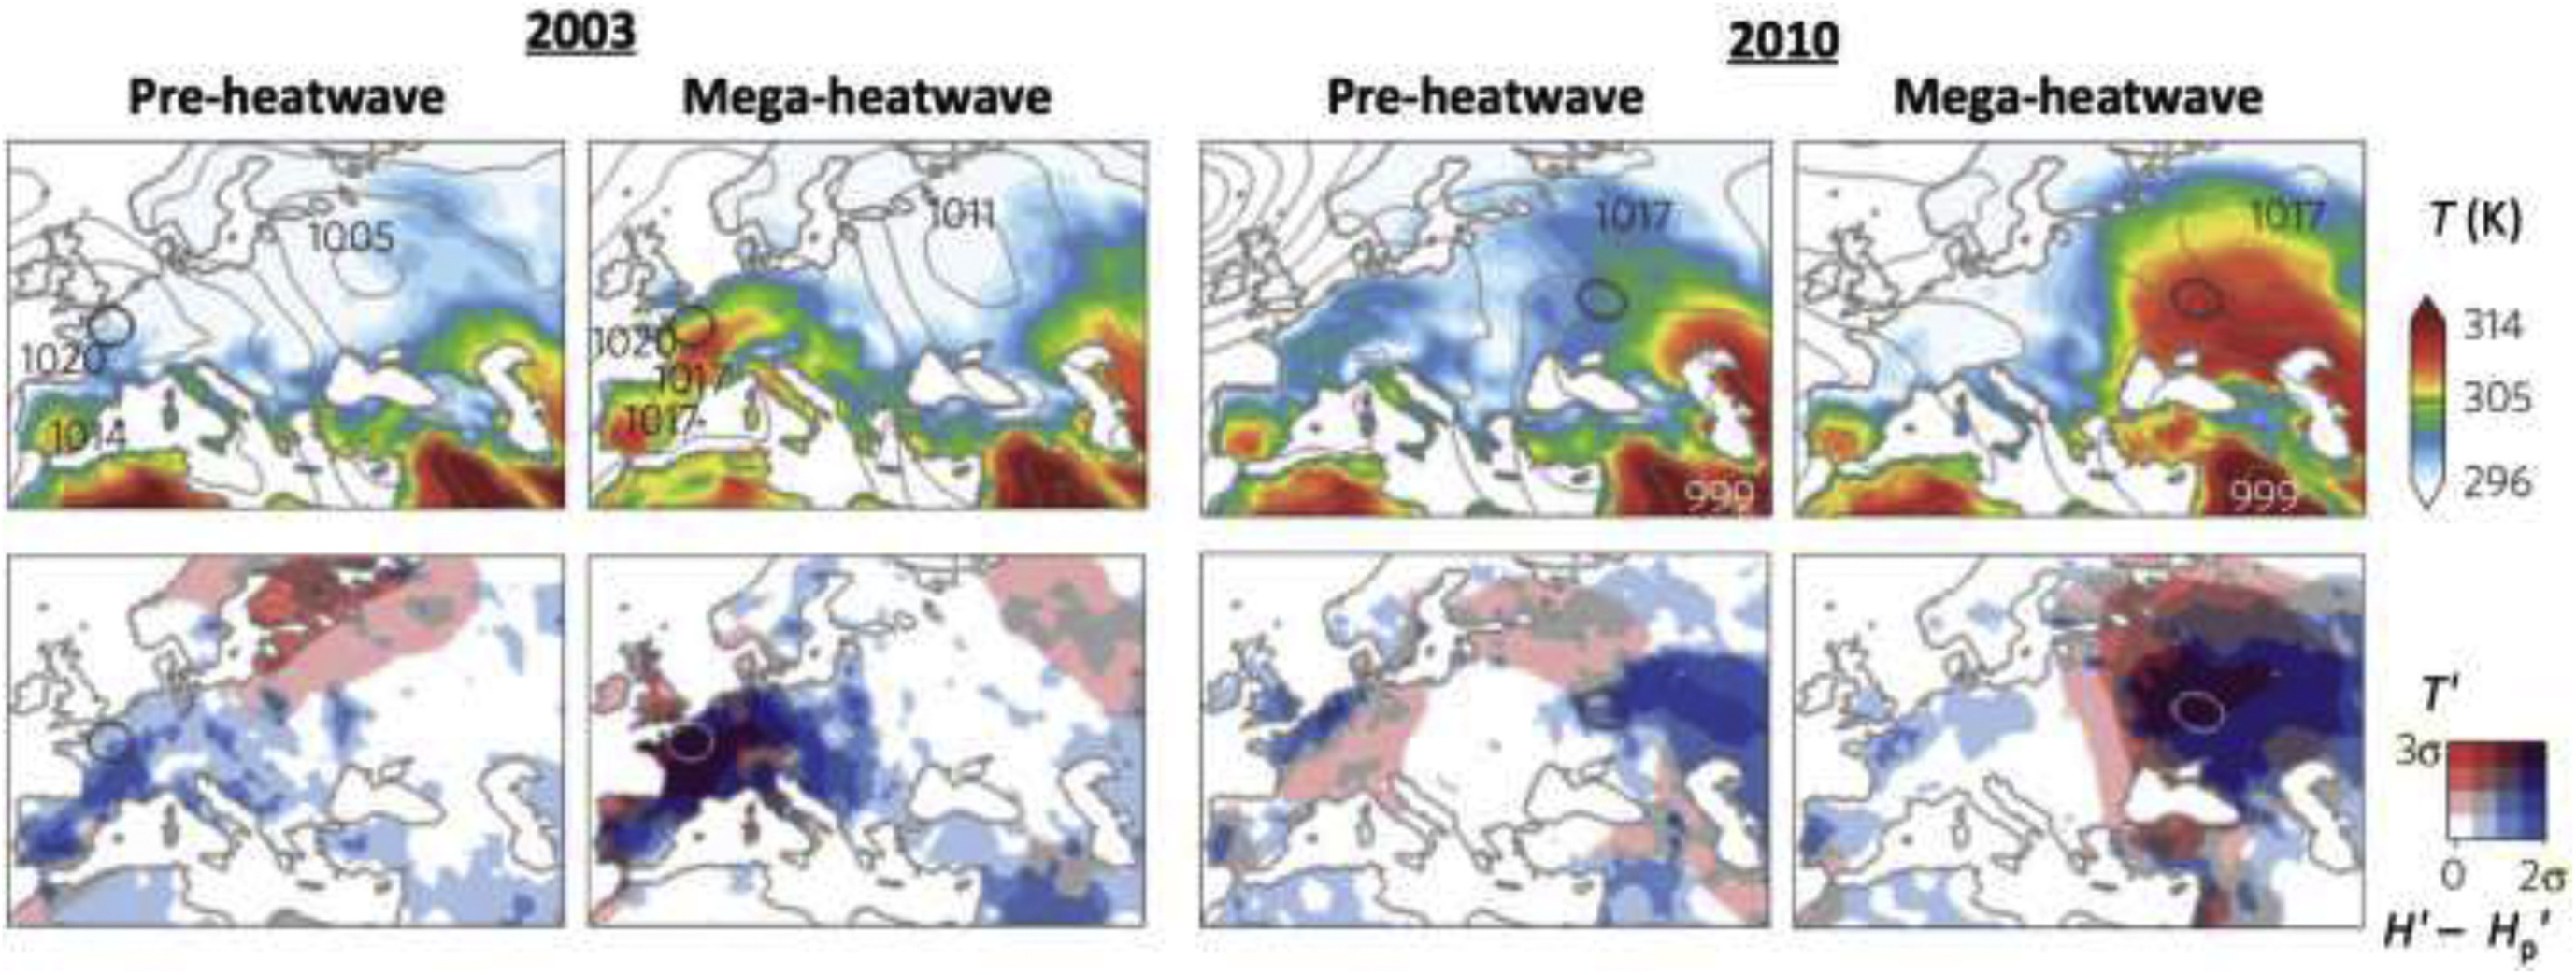 Science figure: temperature maps for 2003 and 2010 heatwaves in Europe